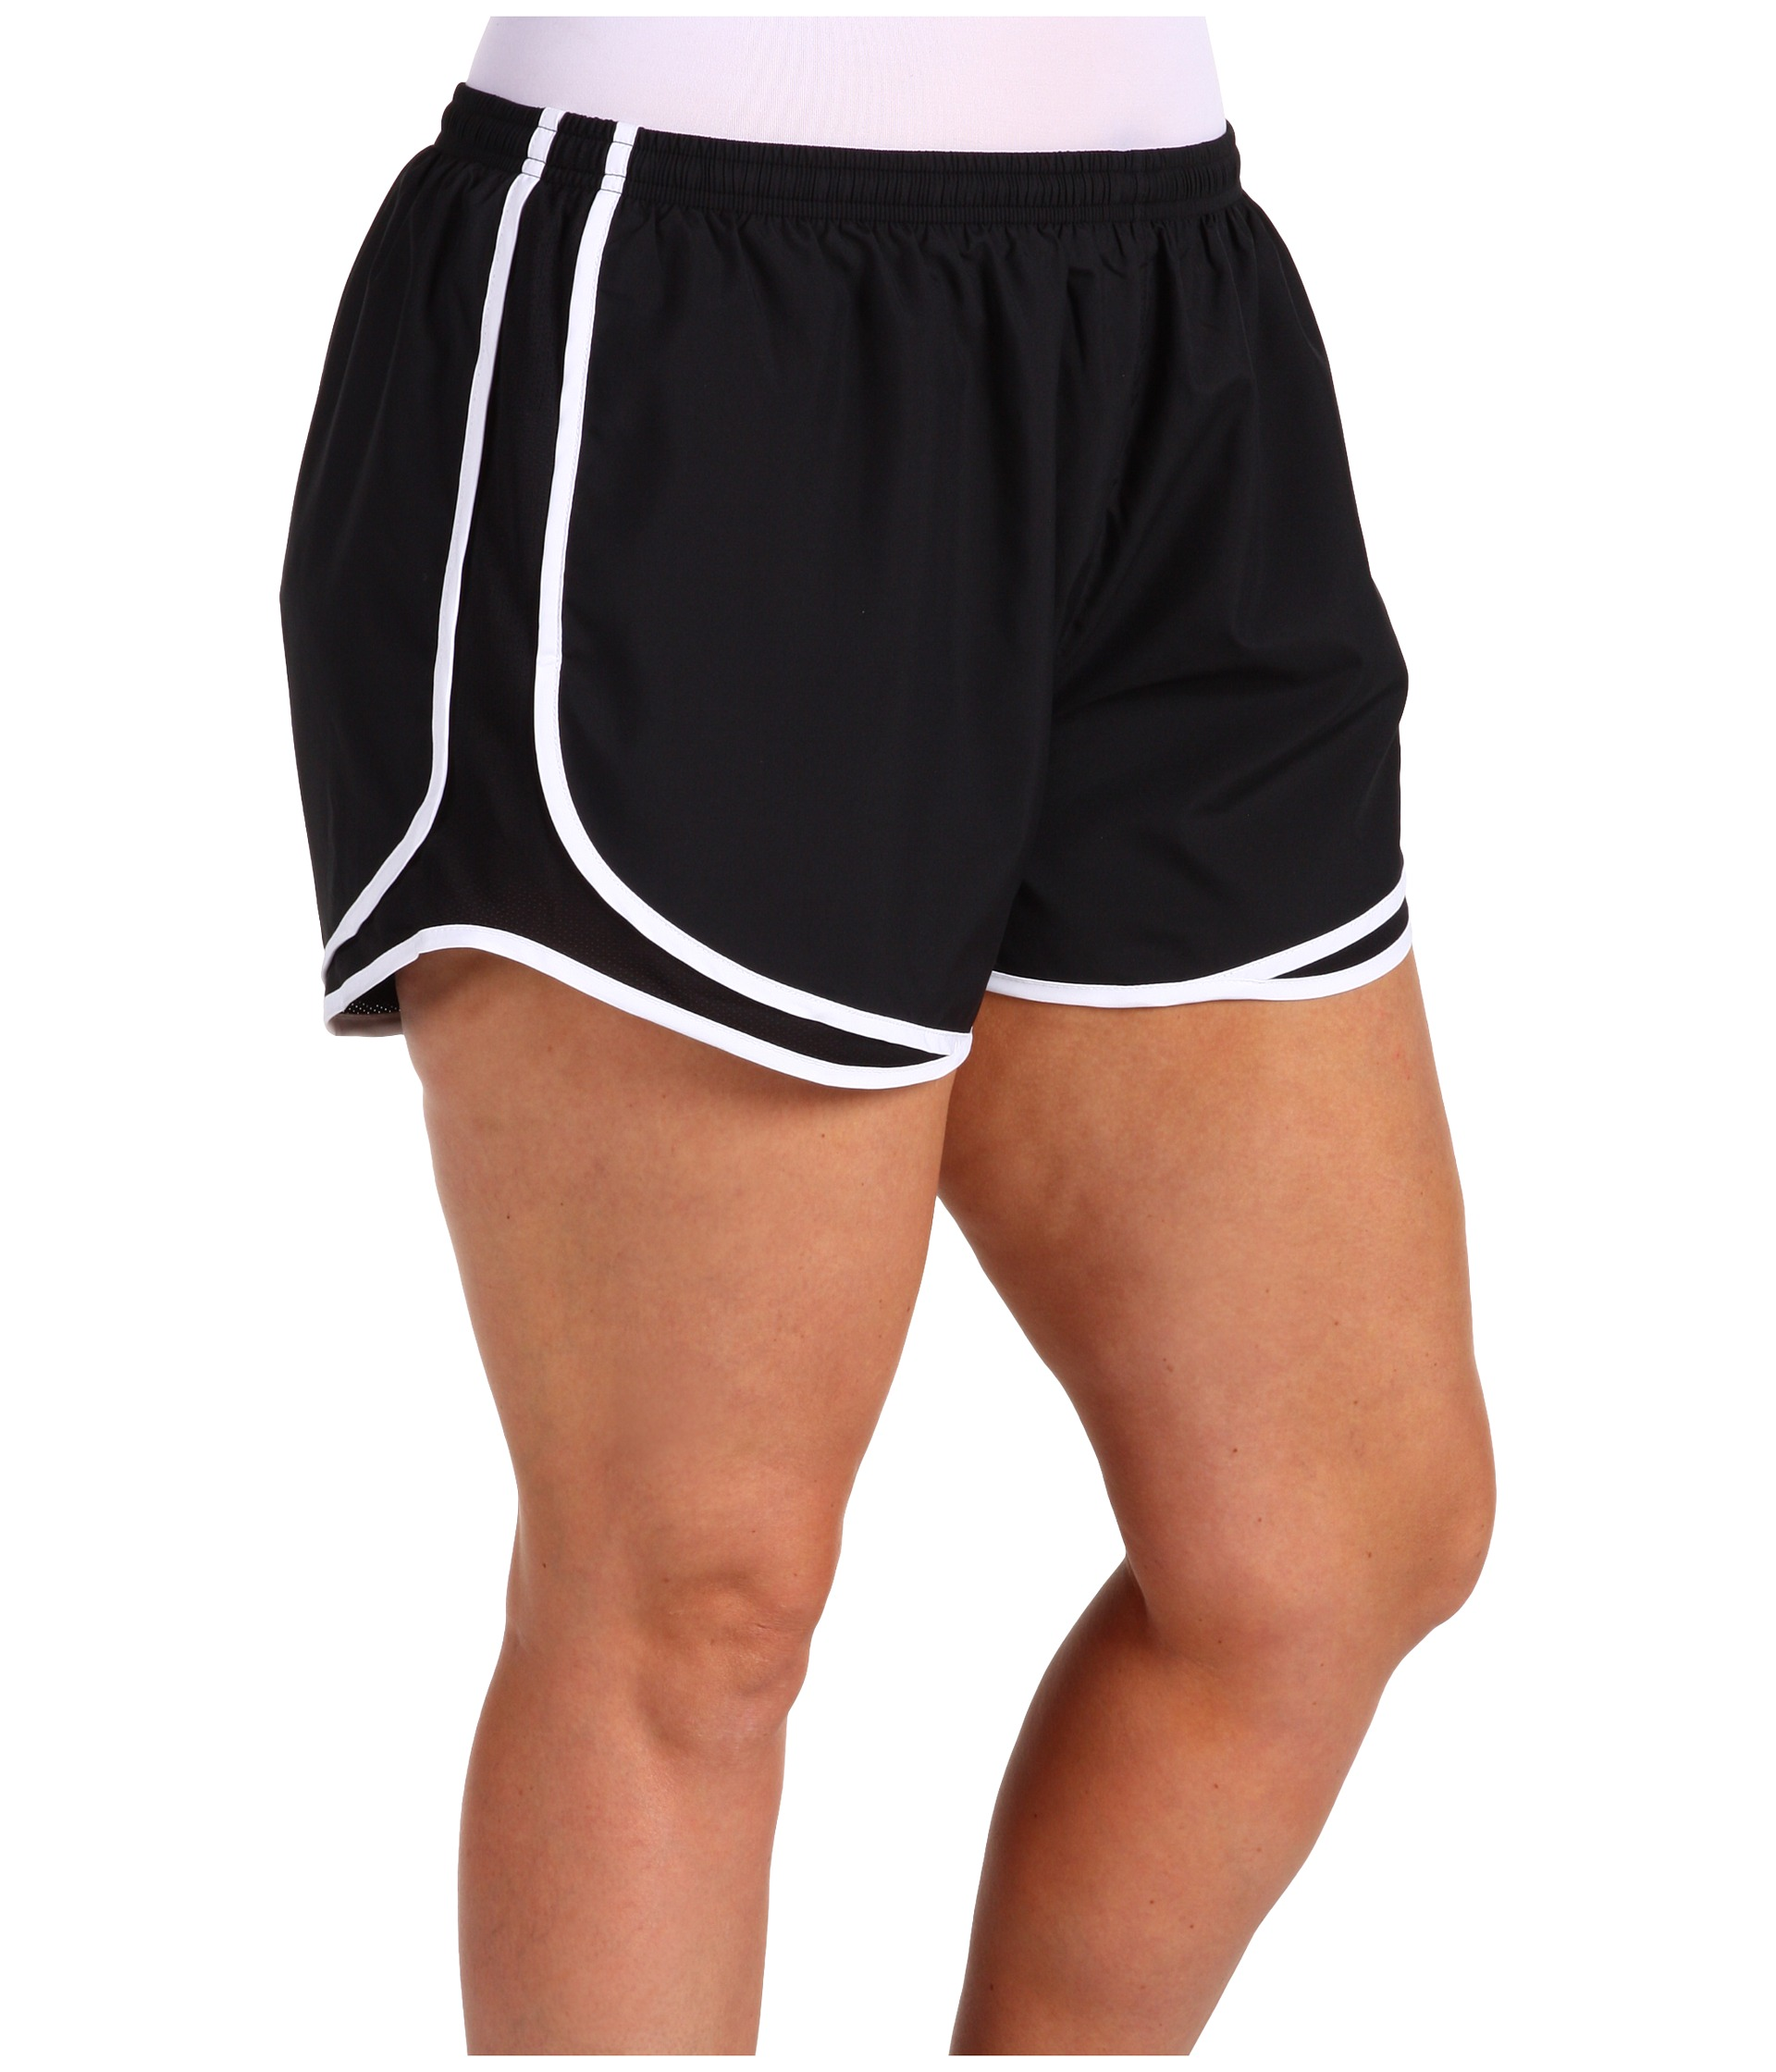 Shop the latest selection of Running Shorts at Foot Locker. Find the hottest sneaker drops from brands like Jordan, Nike, Under Armour, New Balance, and a bunch more. Free shipping on select products.